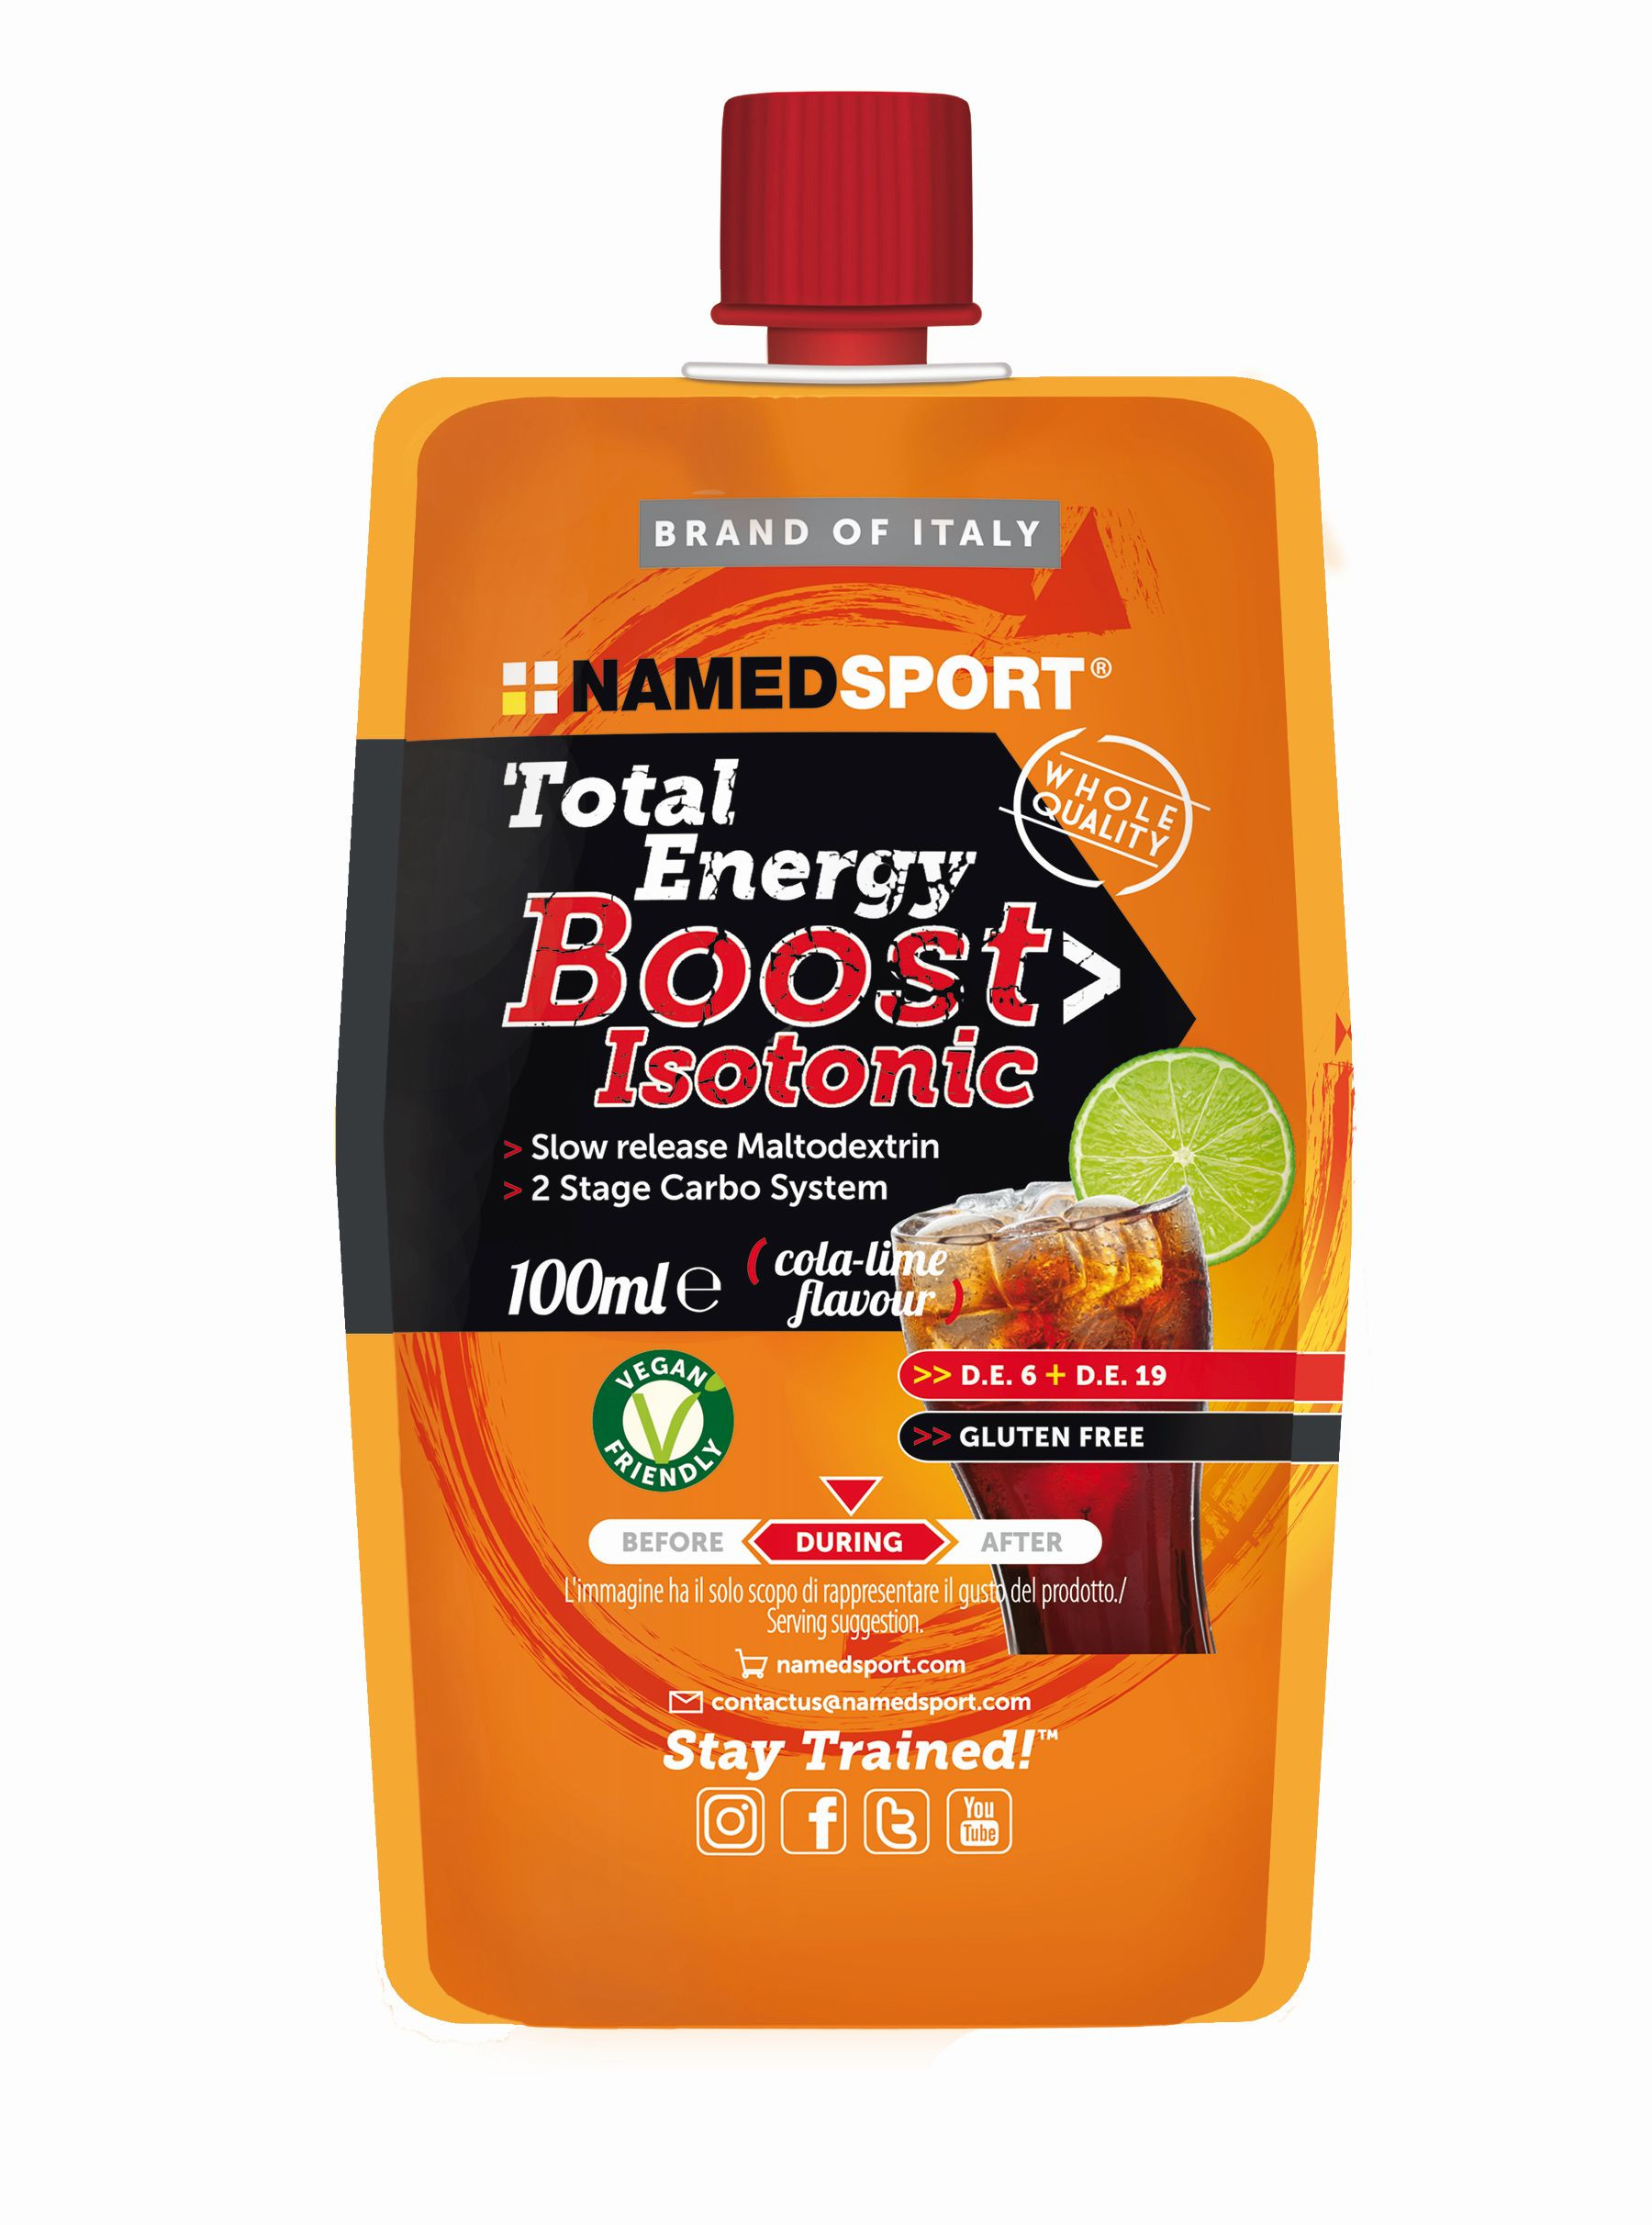 Named Sport Total Energy Boost Isotonic 100 ml